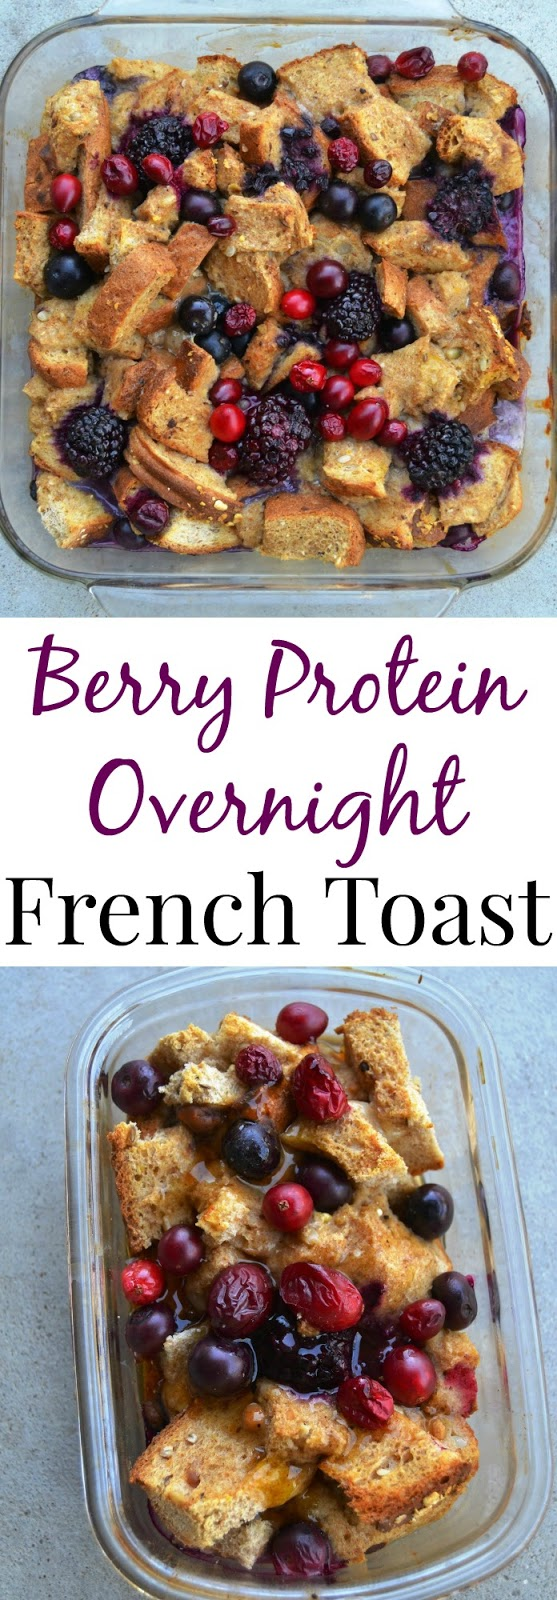 This Berry Protein Overnight French Toast can be prepped the night before and thrown into the oven the next morning for a filling, fresh and flavorful breakfast! www.nutritionistreviews.com